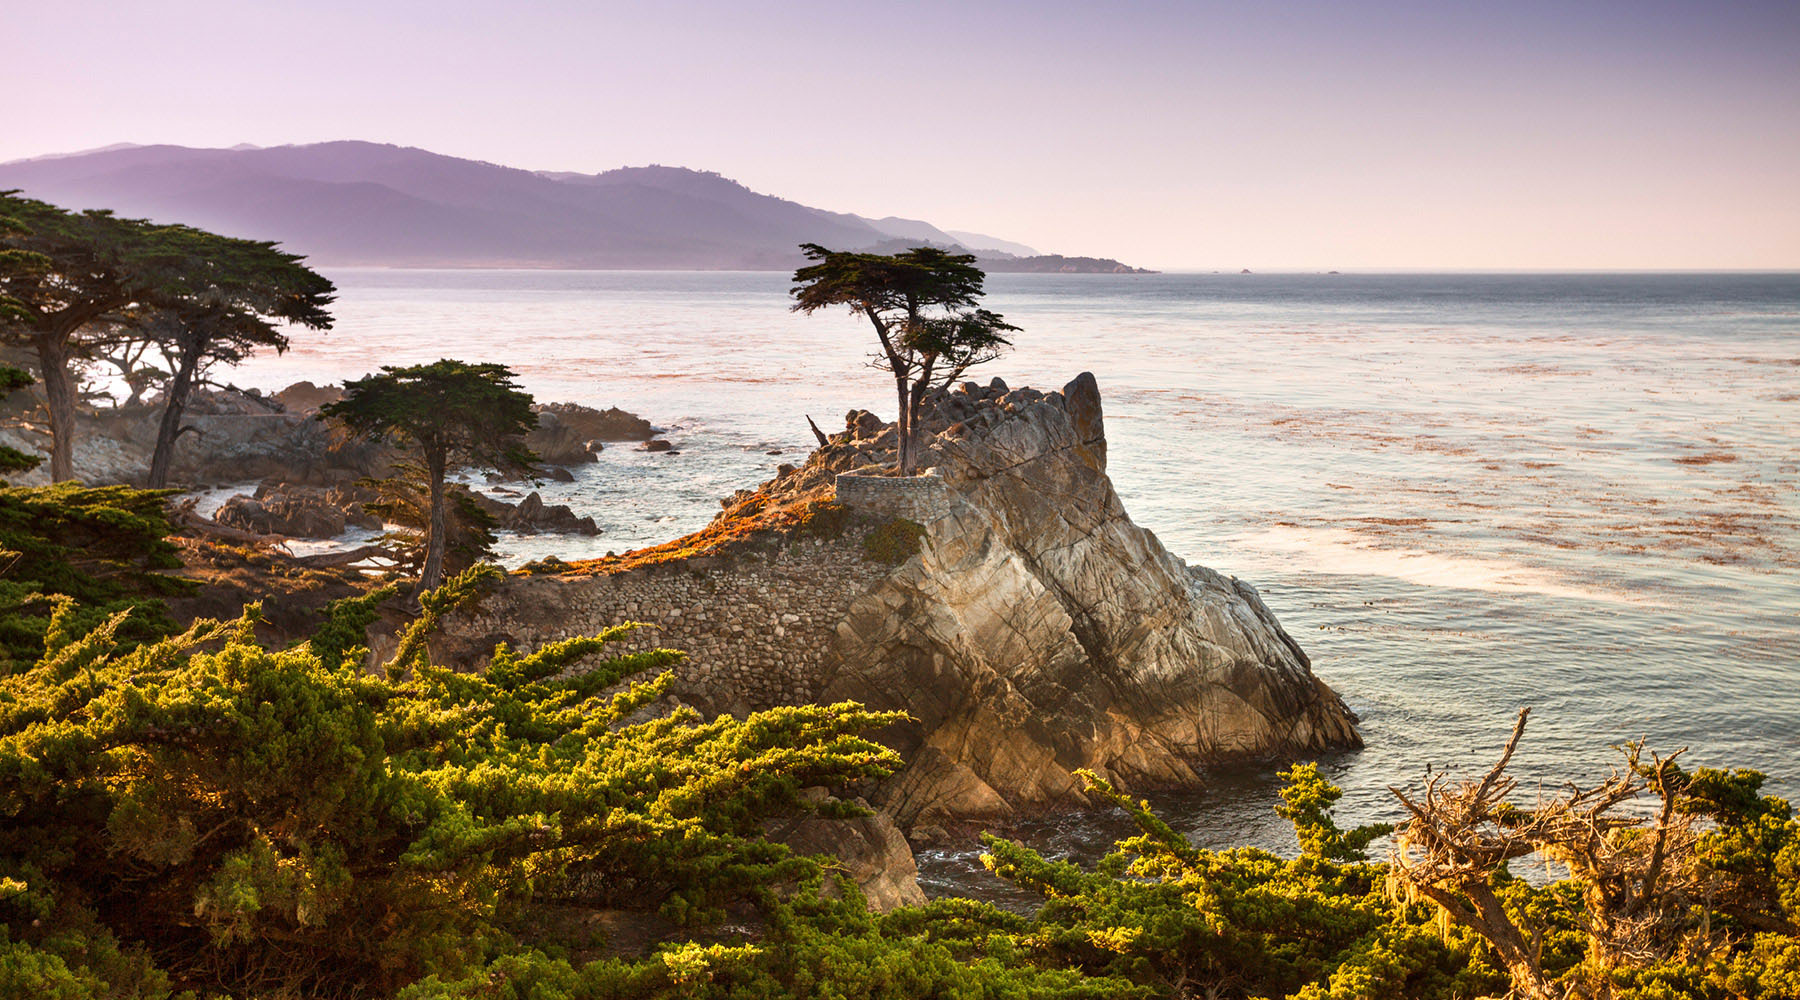 Day Two of our 8 Night Coastal California Voyage